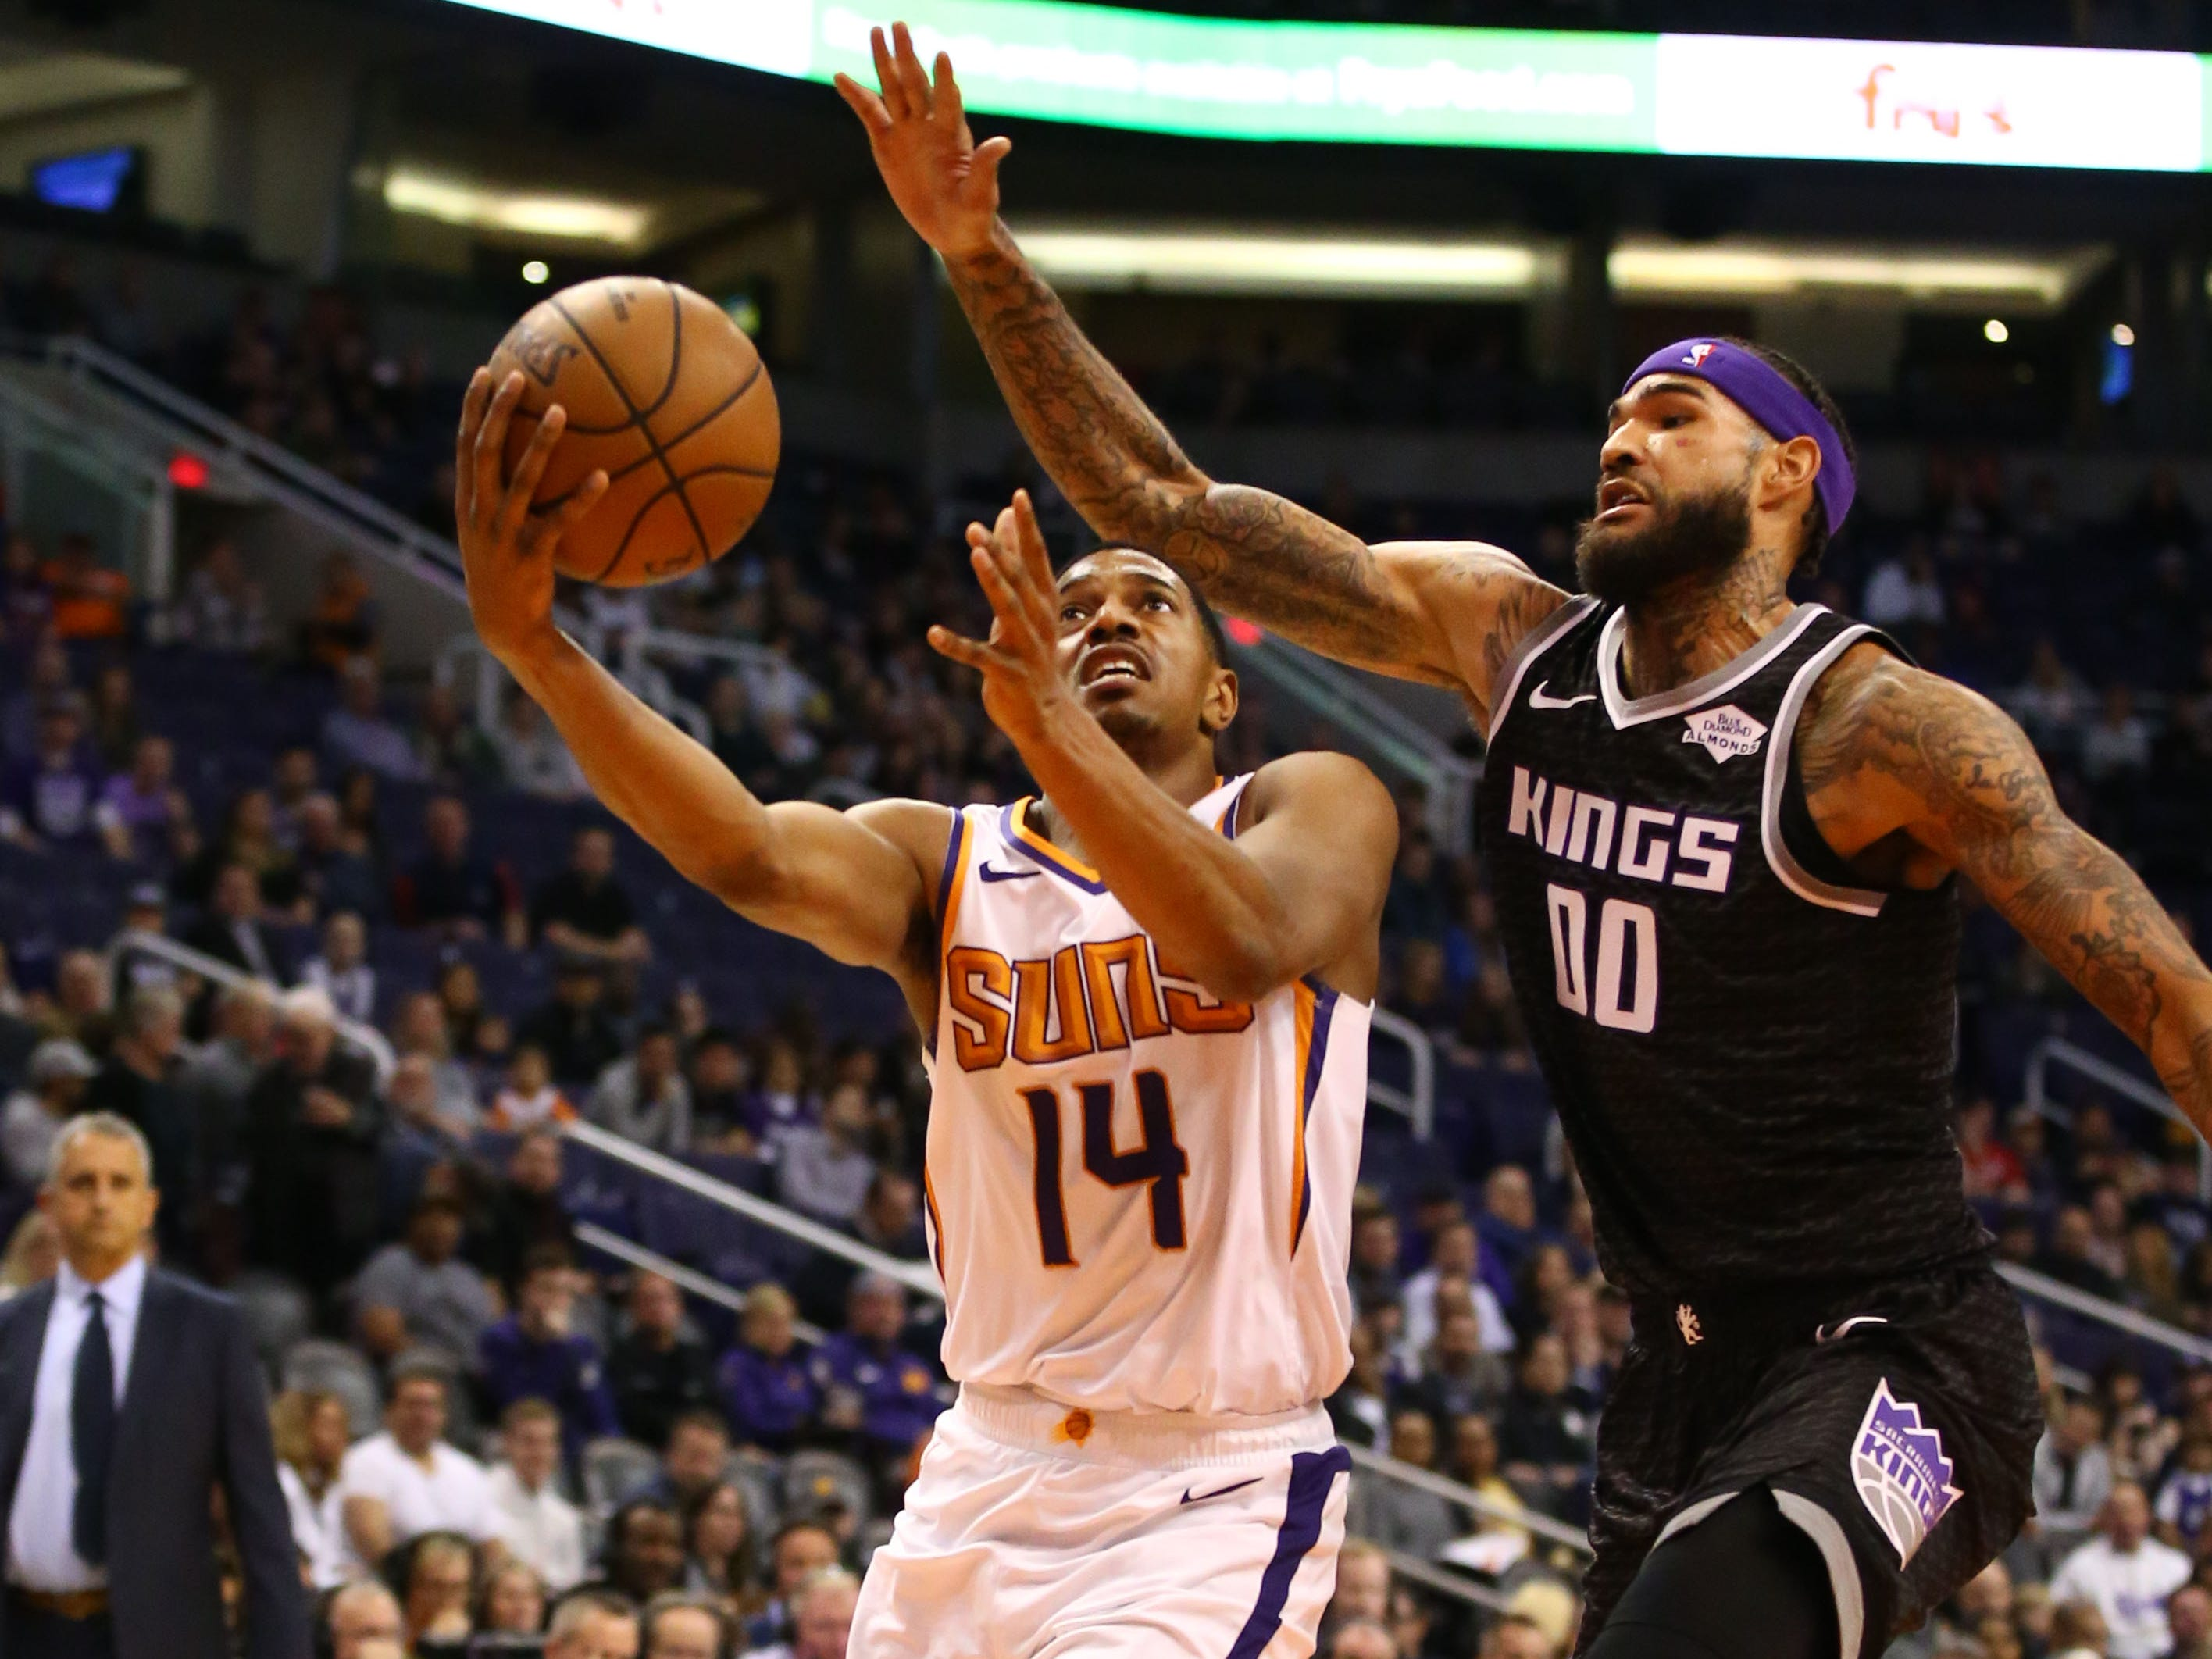 Phoenix Suns guard De'Anthony Melton is pressured by Sacramento Kings center Willie Cauley-Stein in the first half on Jan. 8 at Talking Stick Resort Arena.